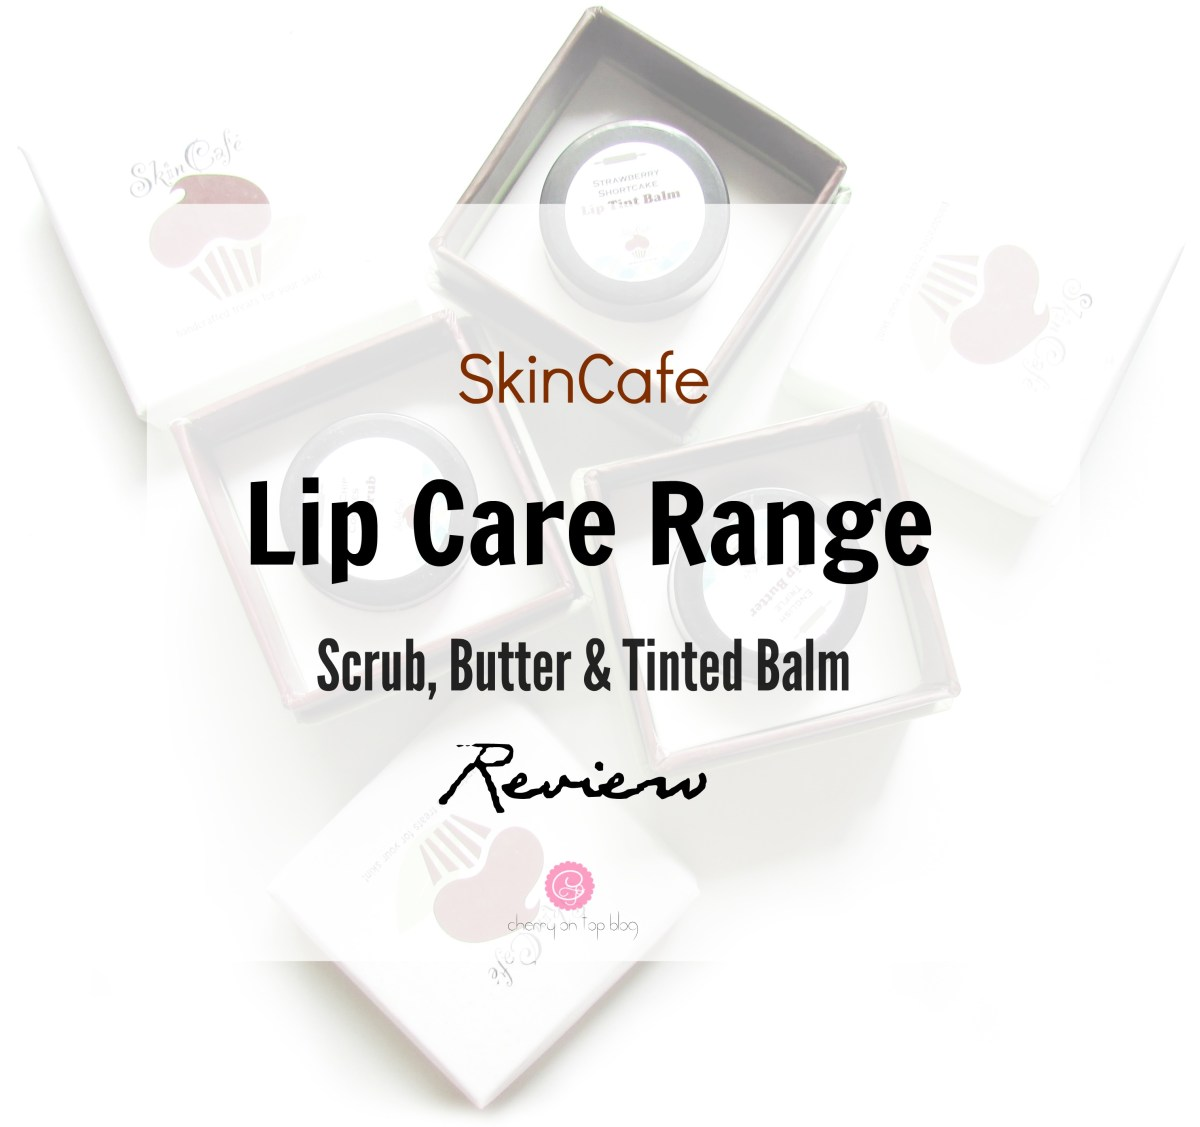 SkinCafe Lip Care Range- Scrub, Butter & Tinted Balm Review